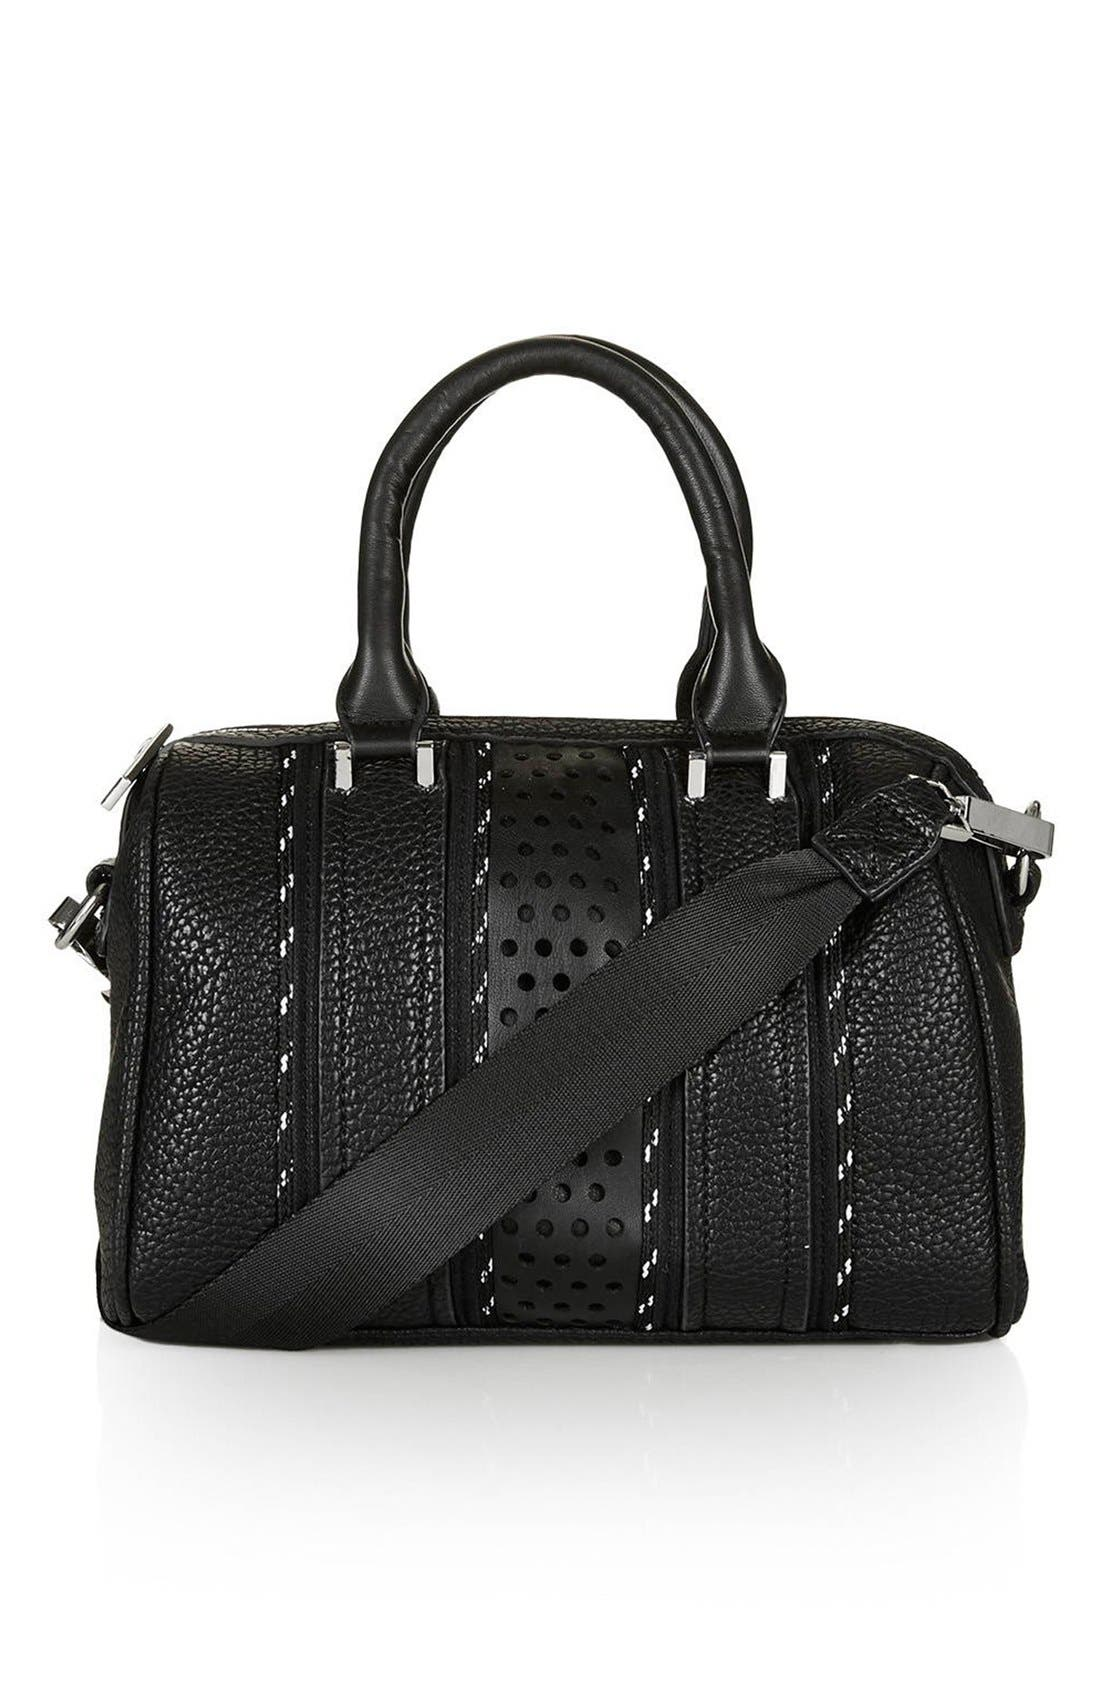 Alternate Image 1 Selected - Topshop 'Tokyo' Sporty Faux Leather Bowler Satchel